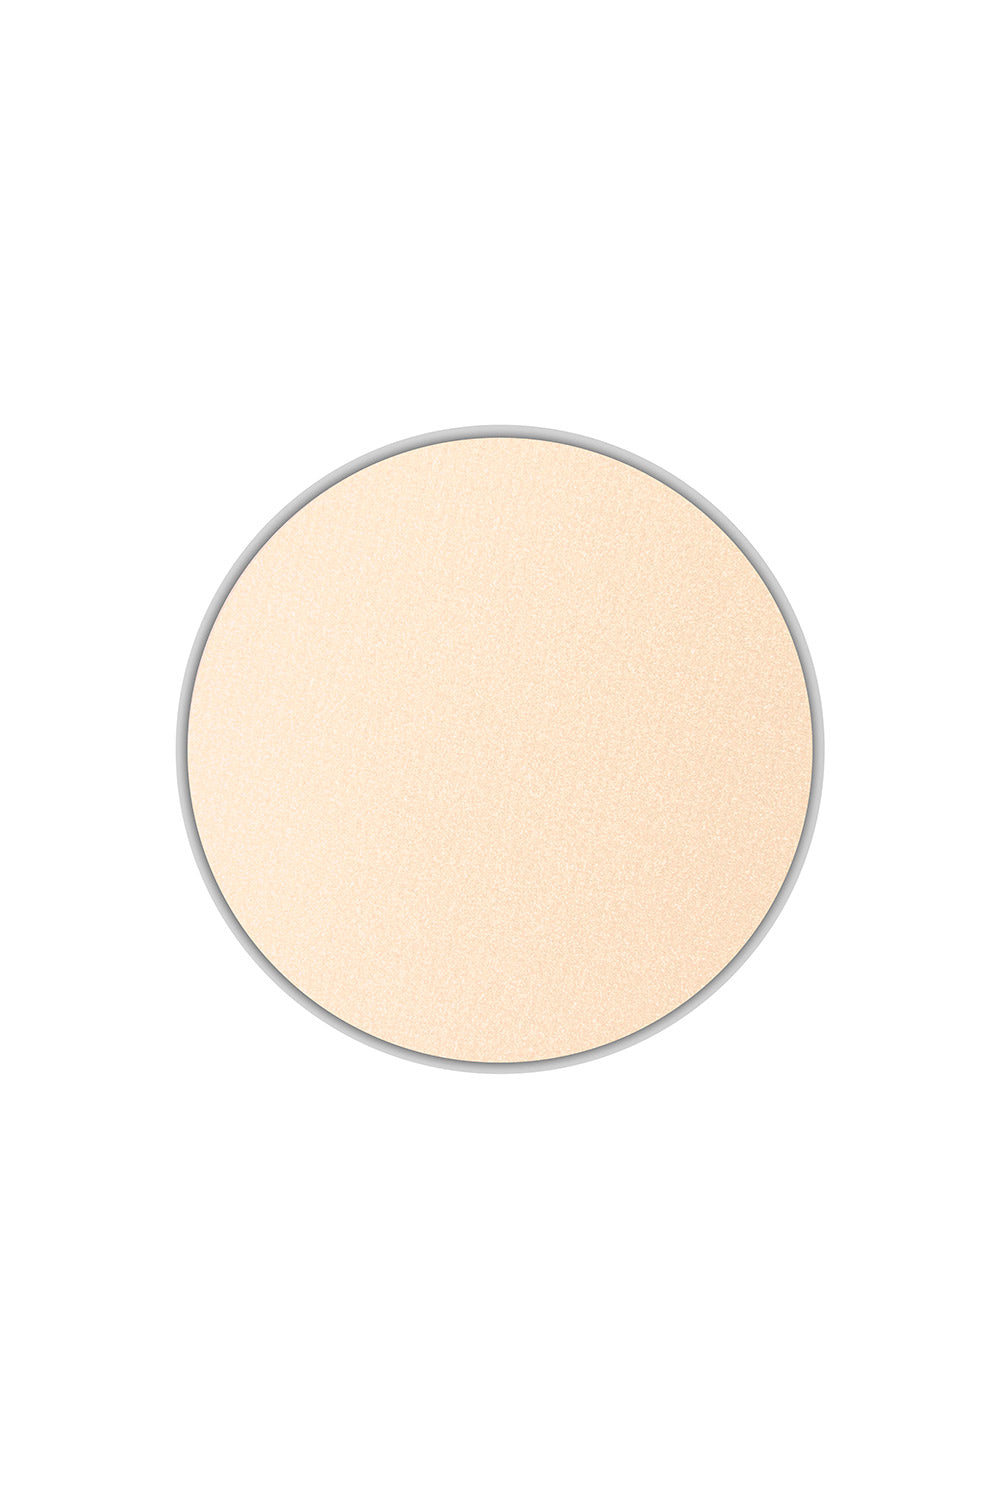 Type 1 Eyeshadow Pan - Angel Cake